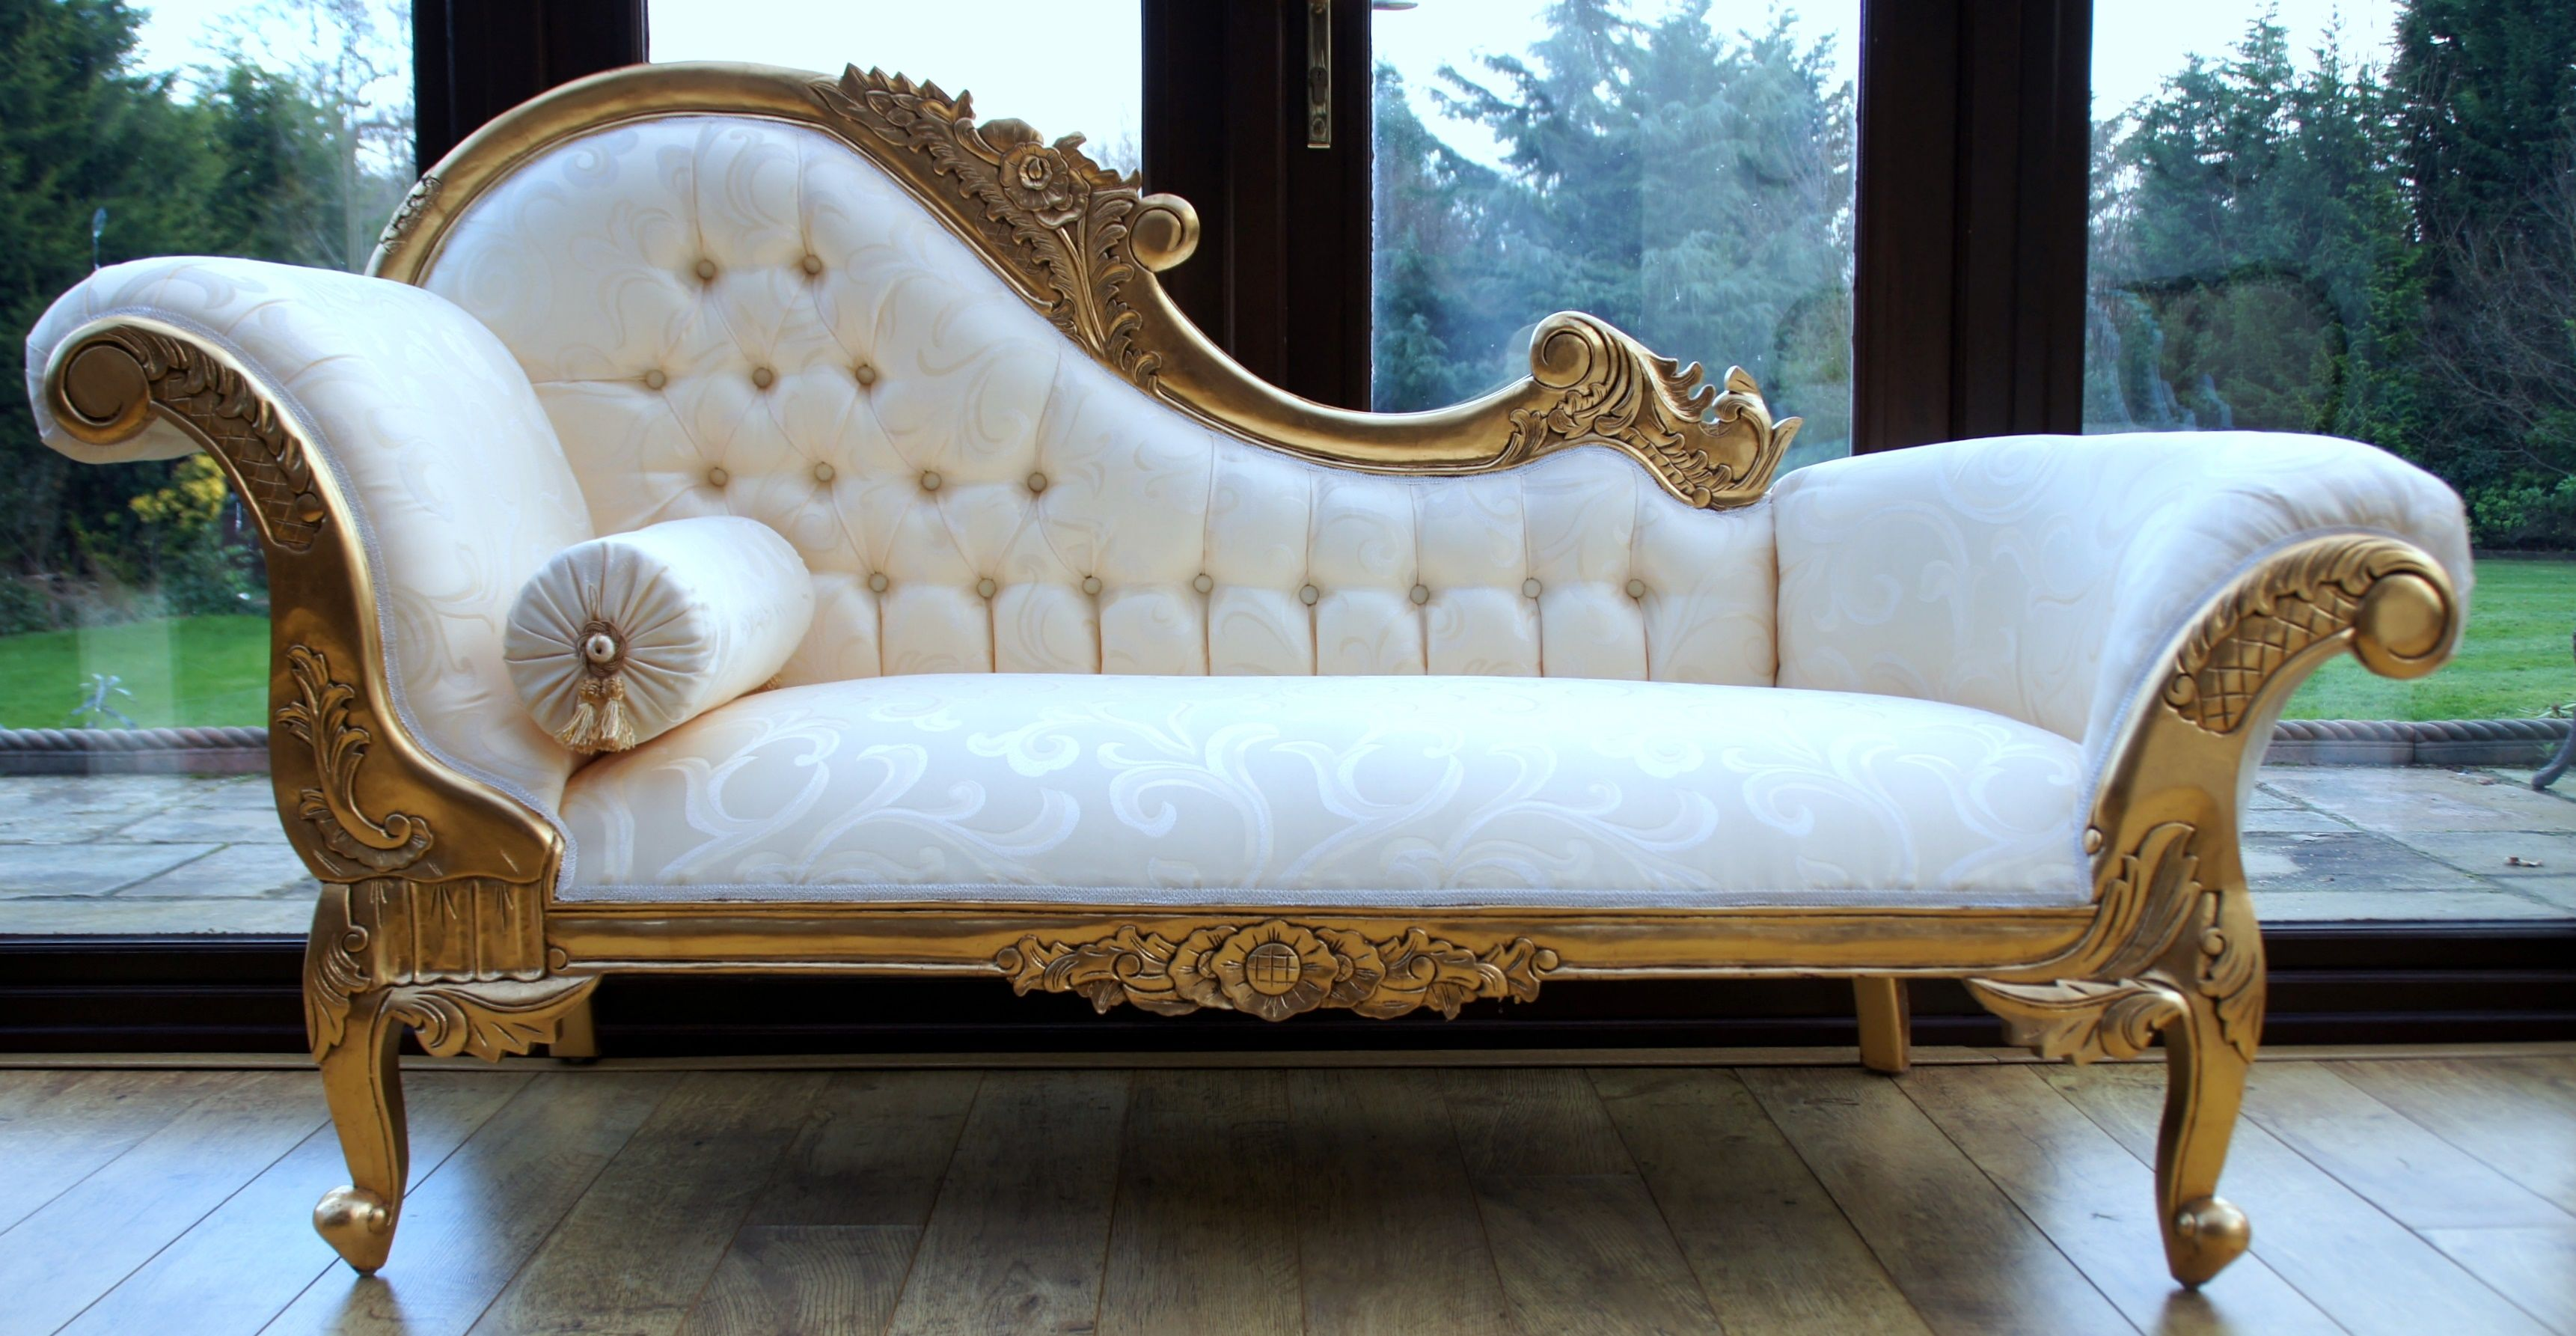 elegant bed sofa couch architecture-Fresh Bed sofa Couch Layout